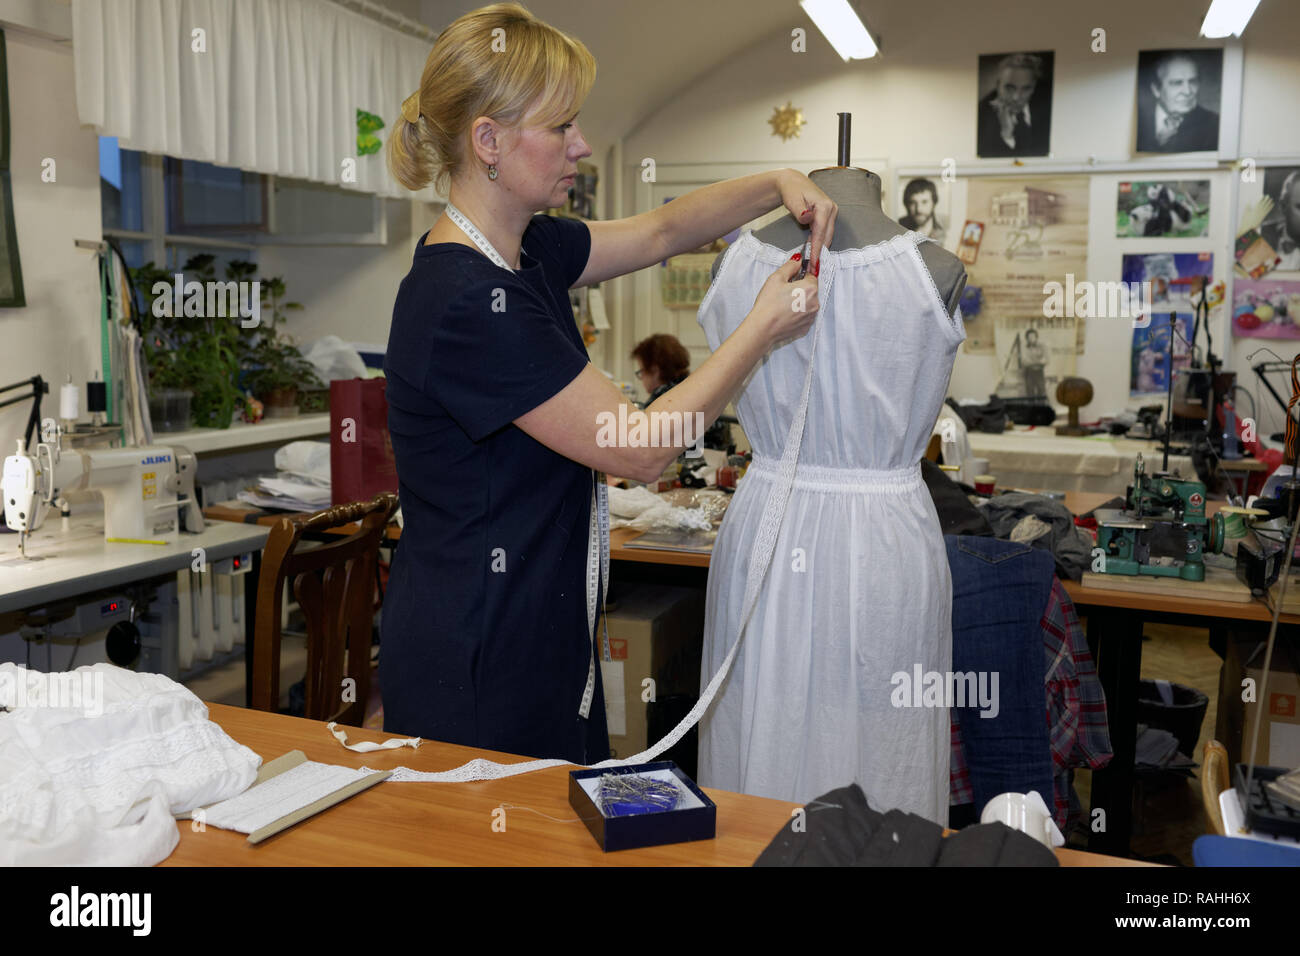 St. Petersburg, Russia - October 26, 2016: Unidentified apparel cutter at work in the Alexandrinsky theater. The theater was created in 1756 by the or - Stock Image